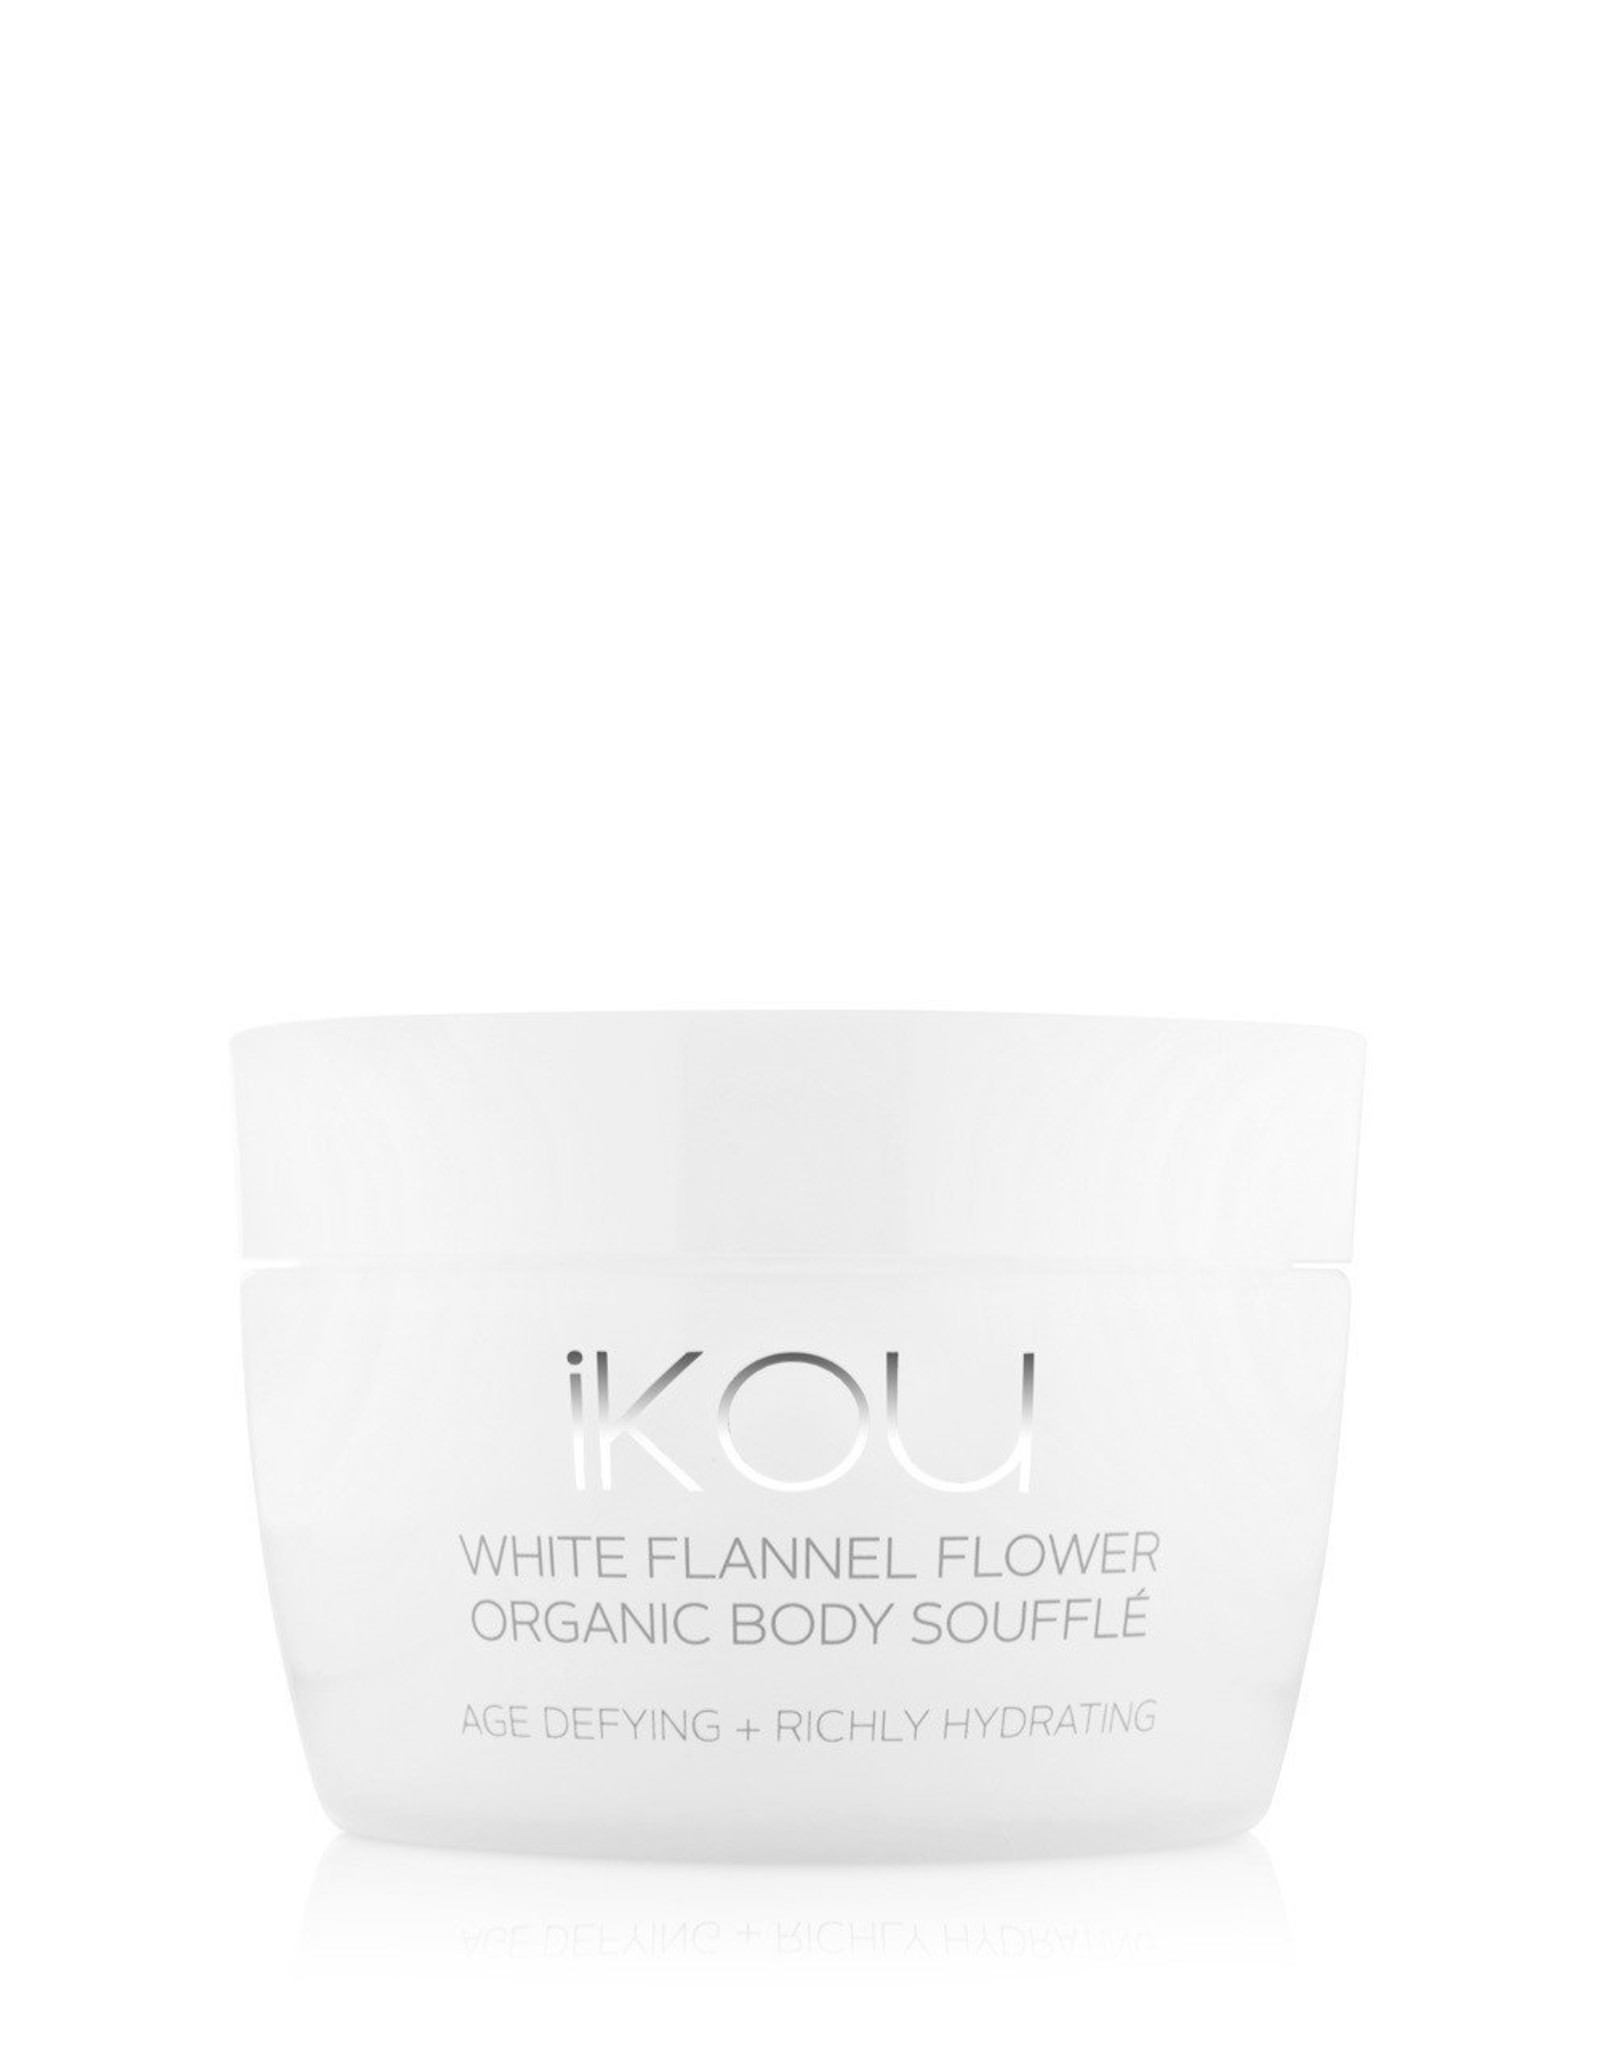 IKOU white flannel flower age-defying body souffle